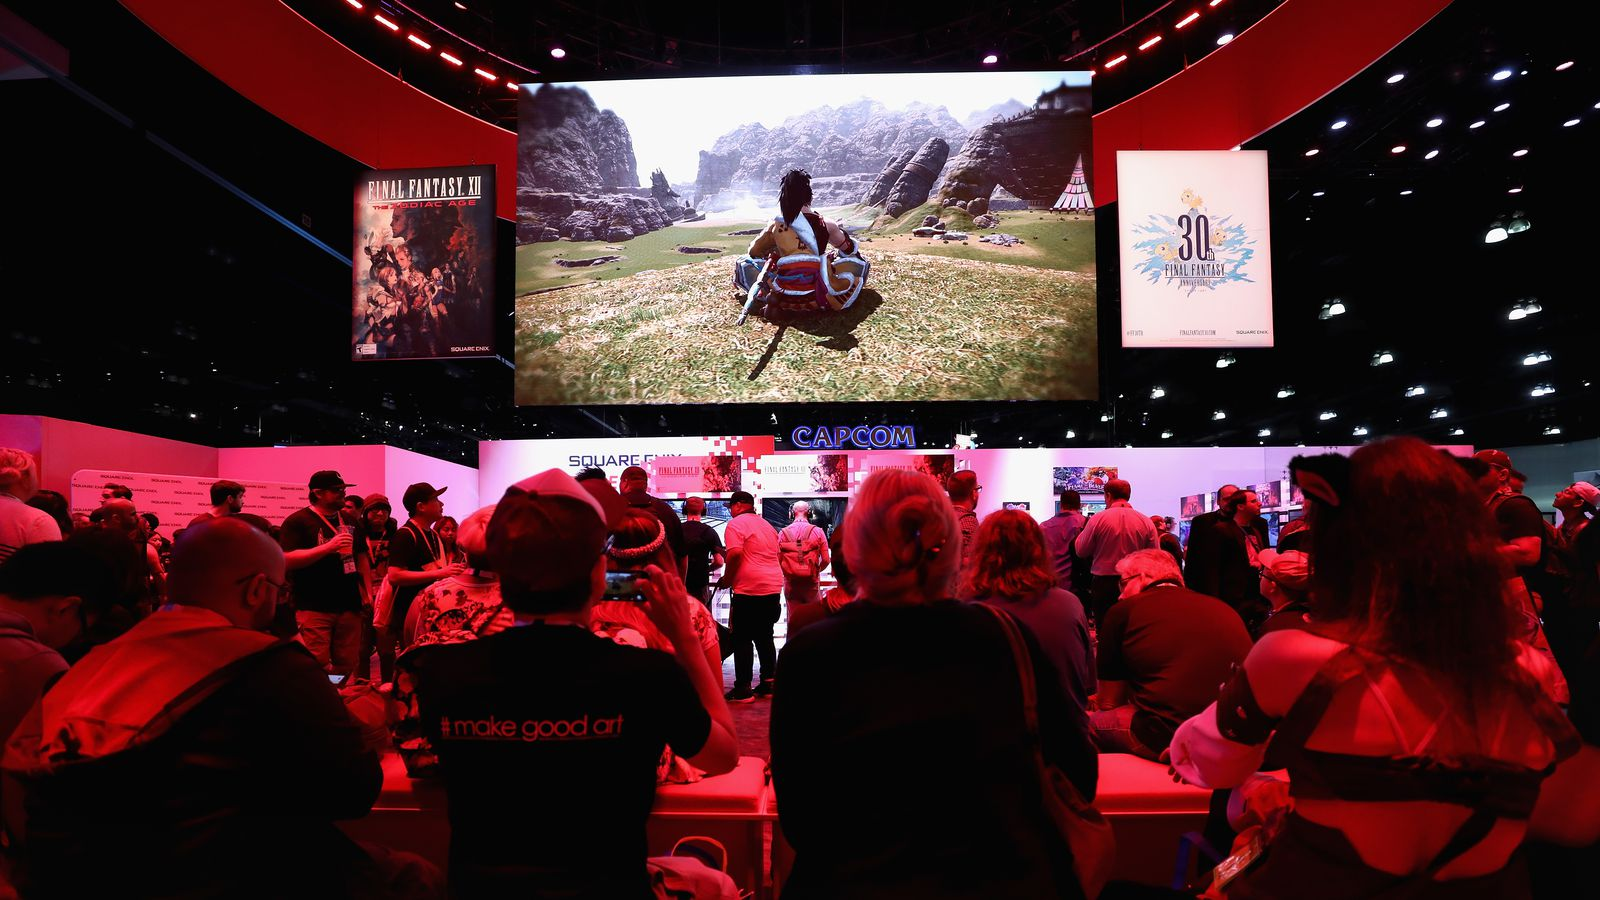 Fans find E3's first public show a mixed bag